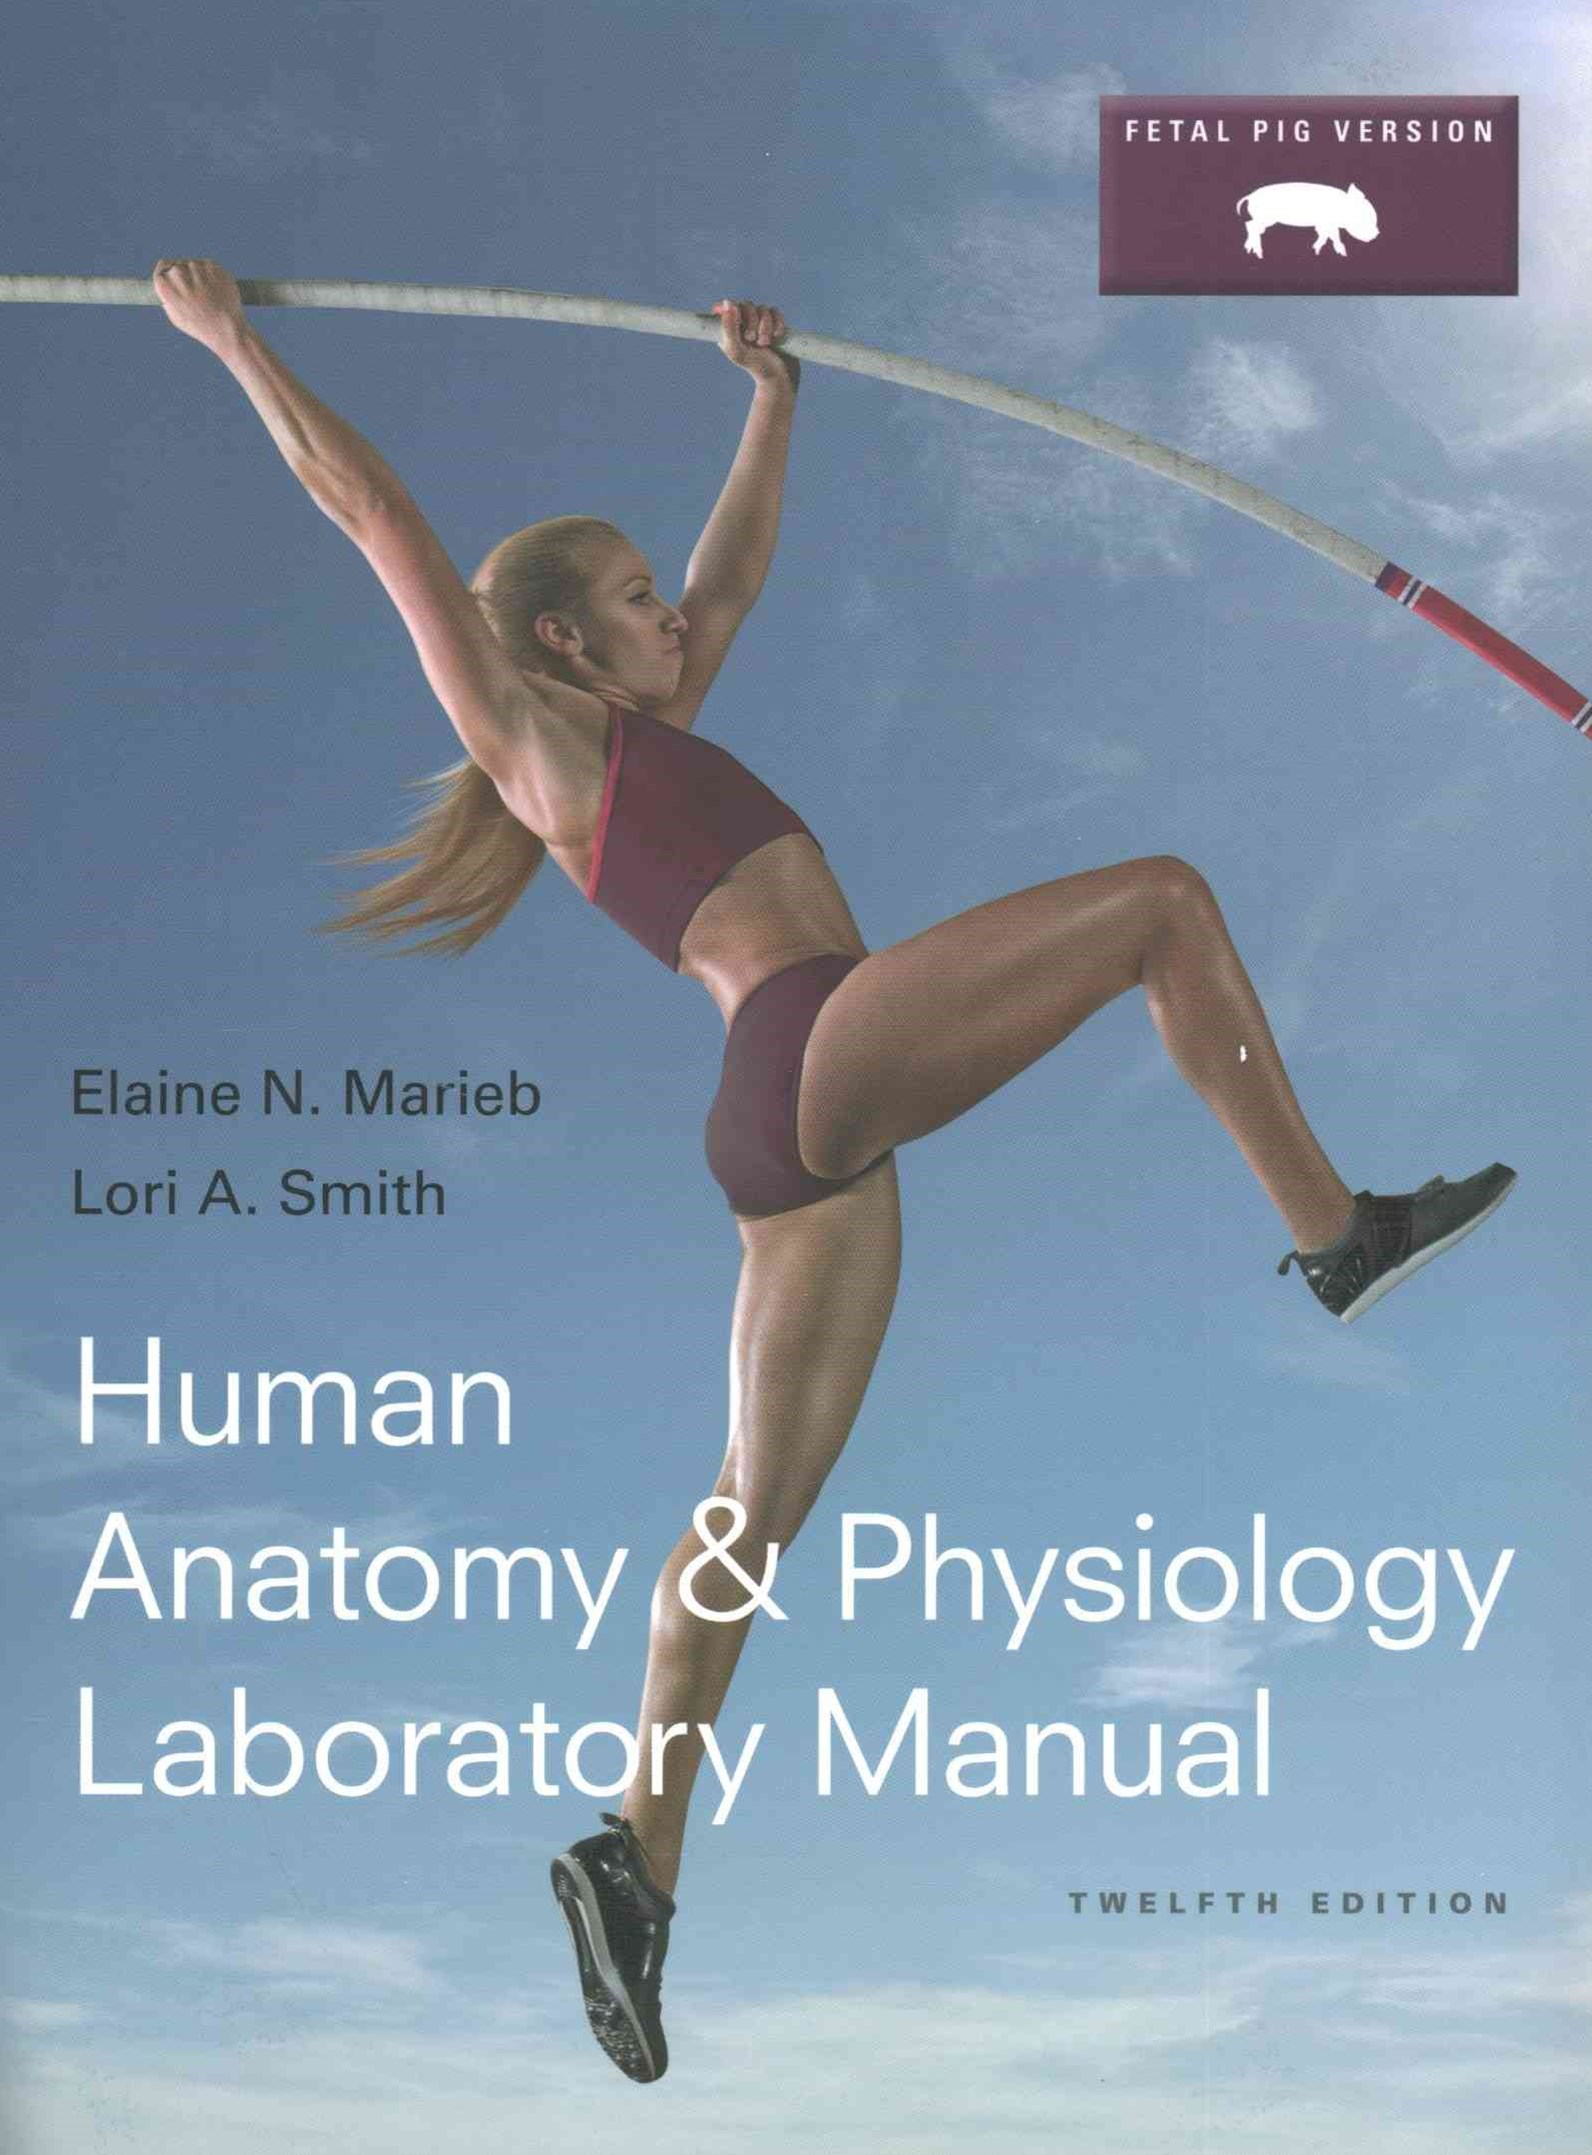 Human Anatomy and Physiology Laboratory Manual, Fetal Pig Version, MasteringA&P with Pearson EText